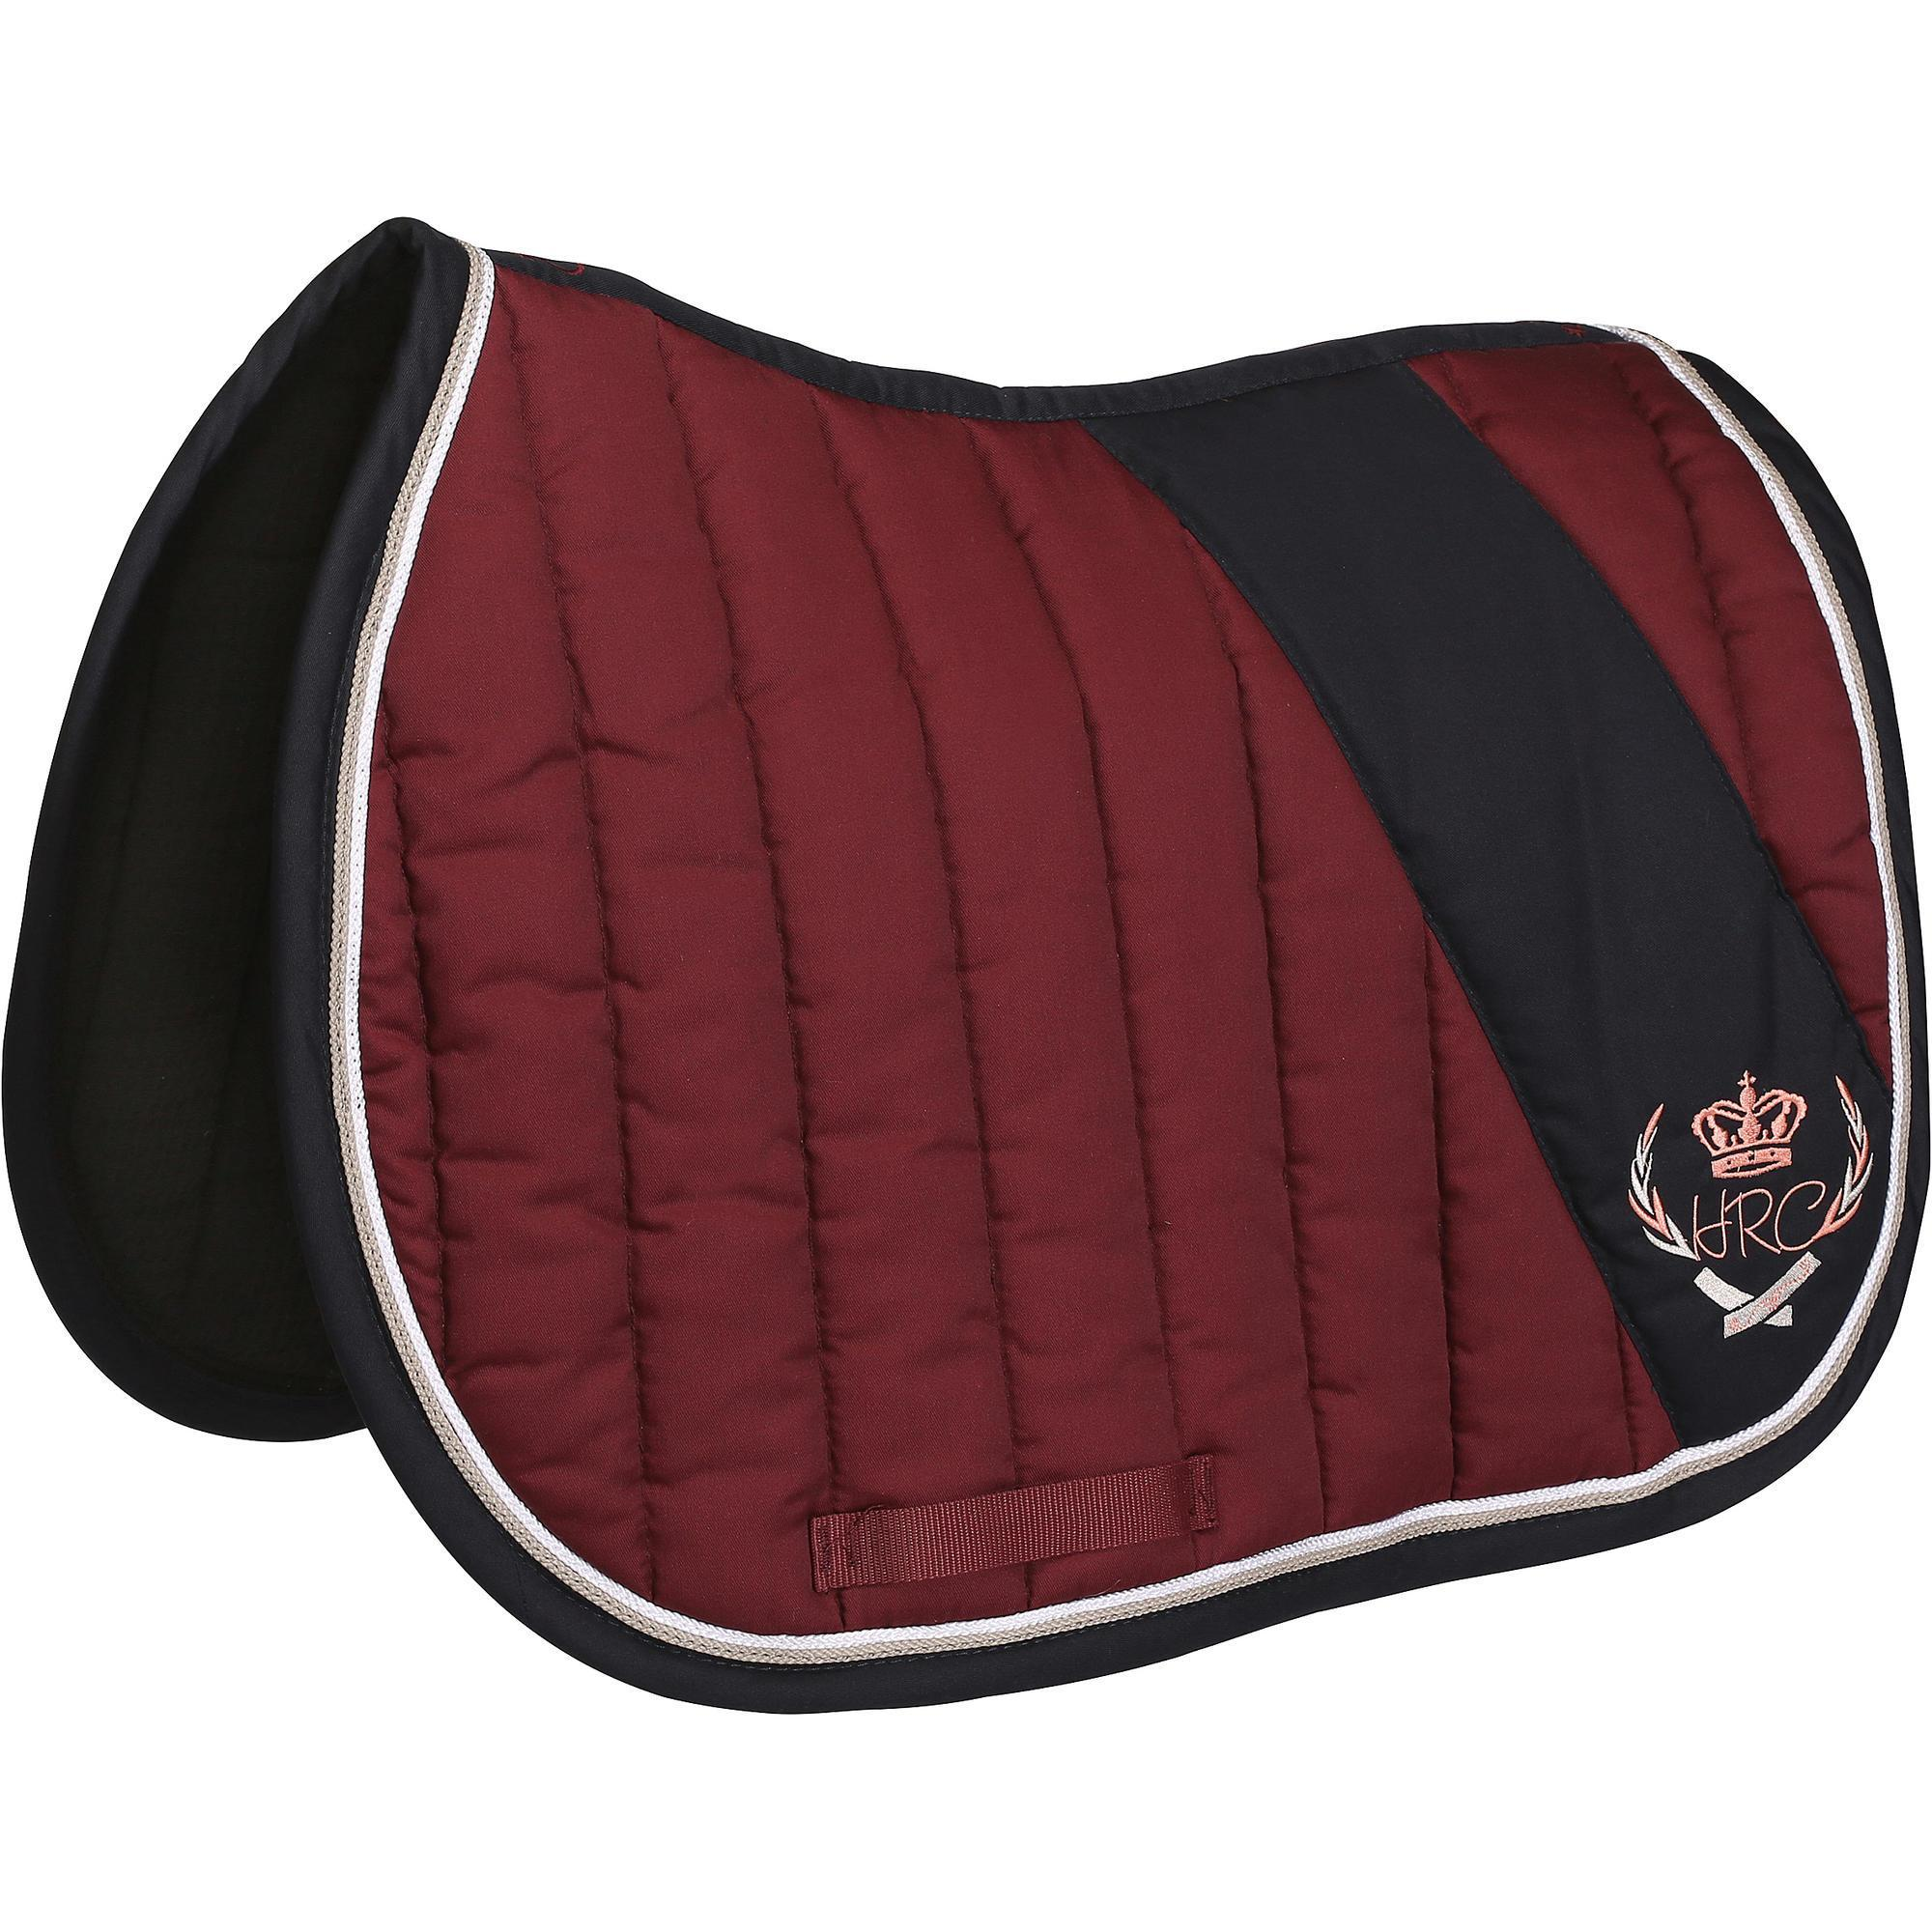 Tapis de selle quitation cheval jump bordeaux fouganza - Decathlon equitation tapis ...